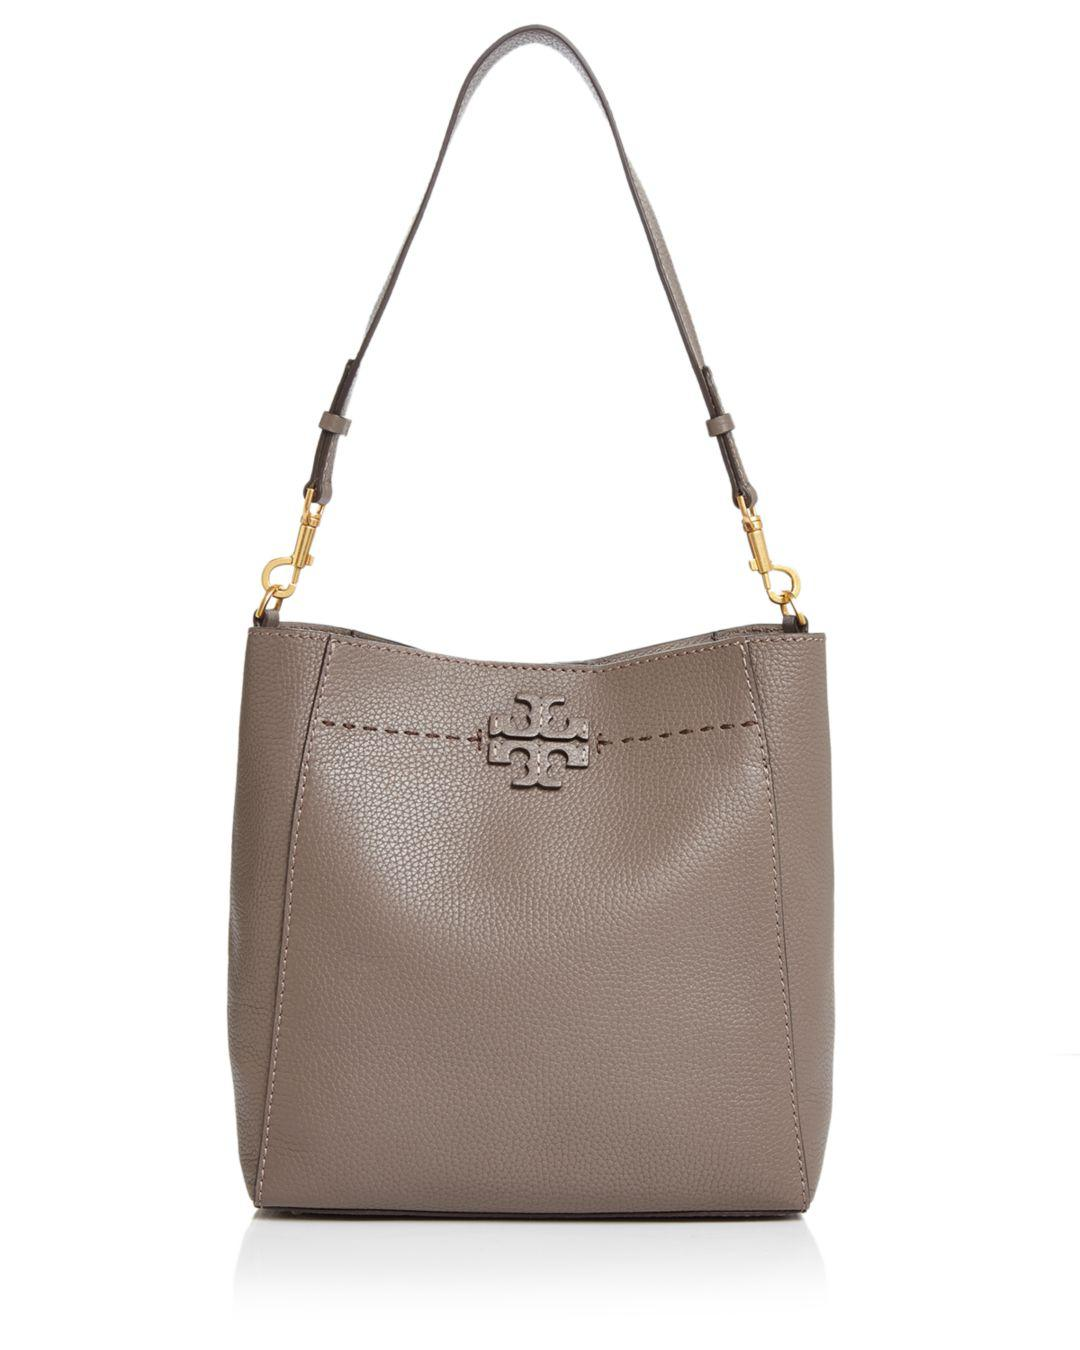 7127c743f24 Tory Burch. Women s Mcgraw Leather Hobo